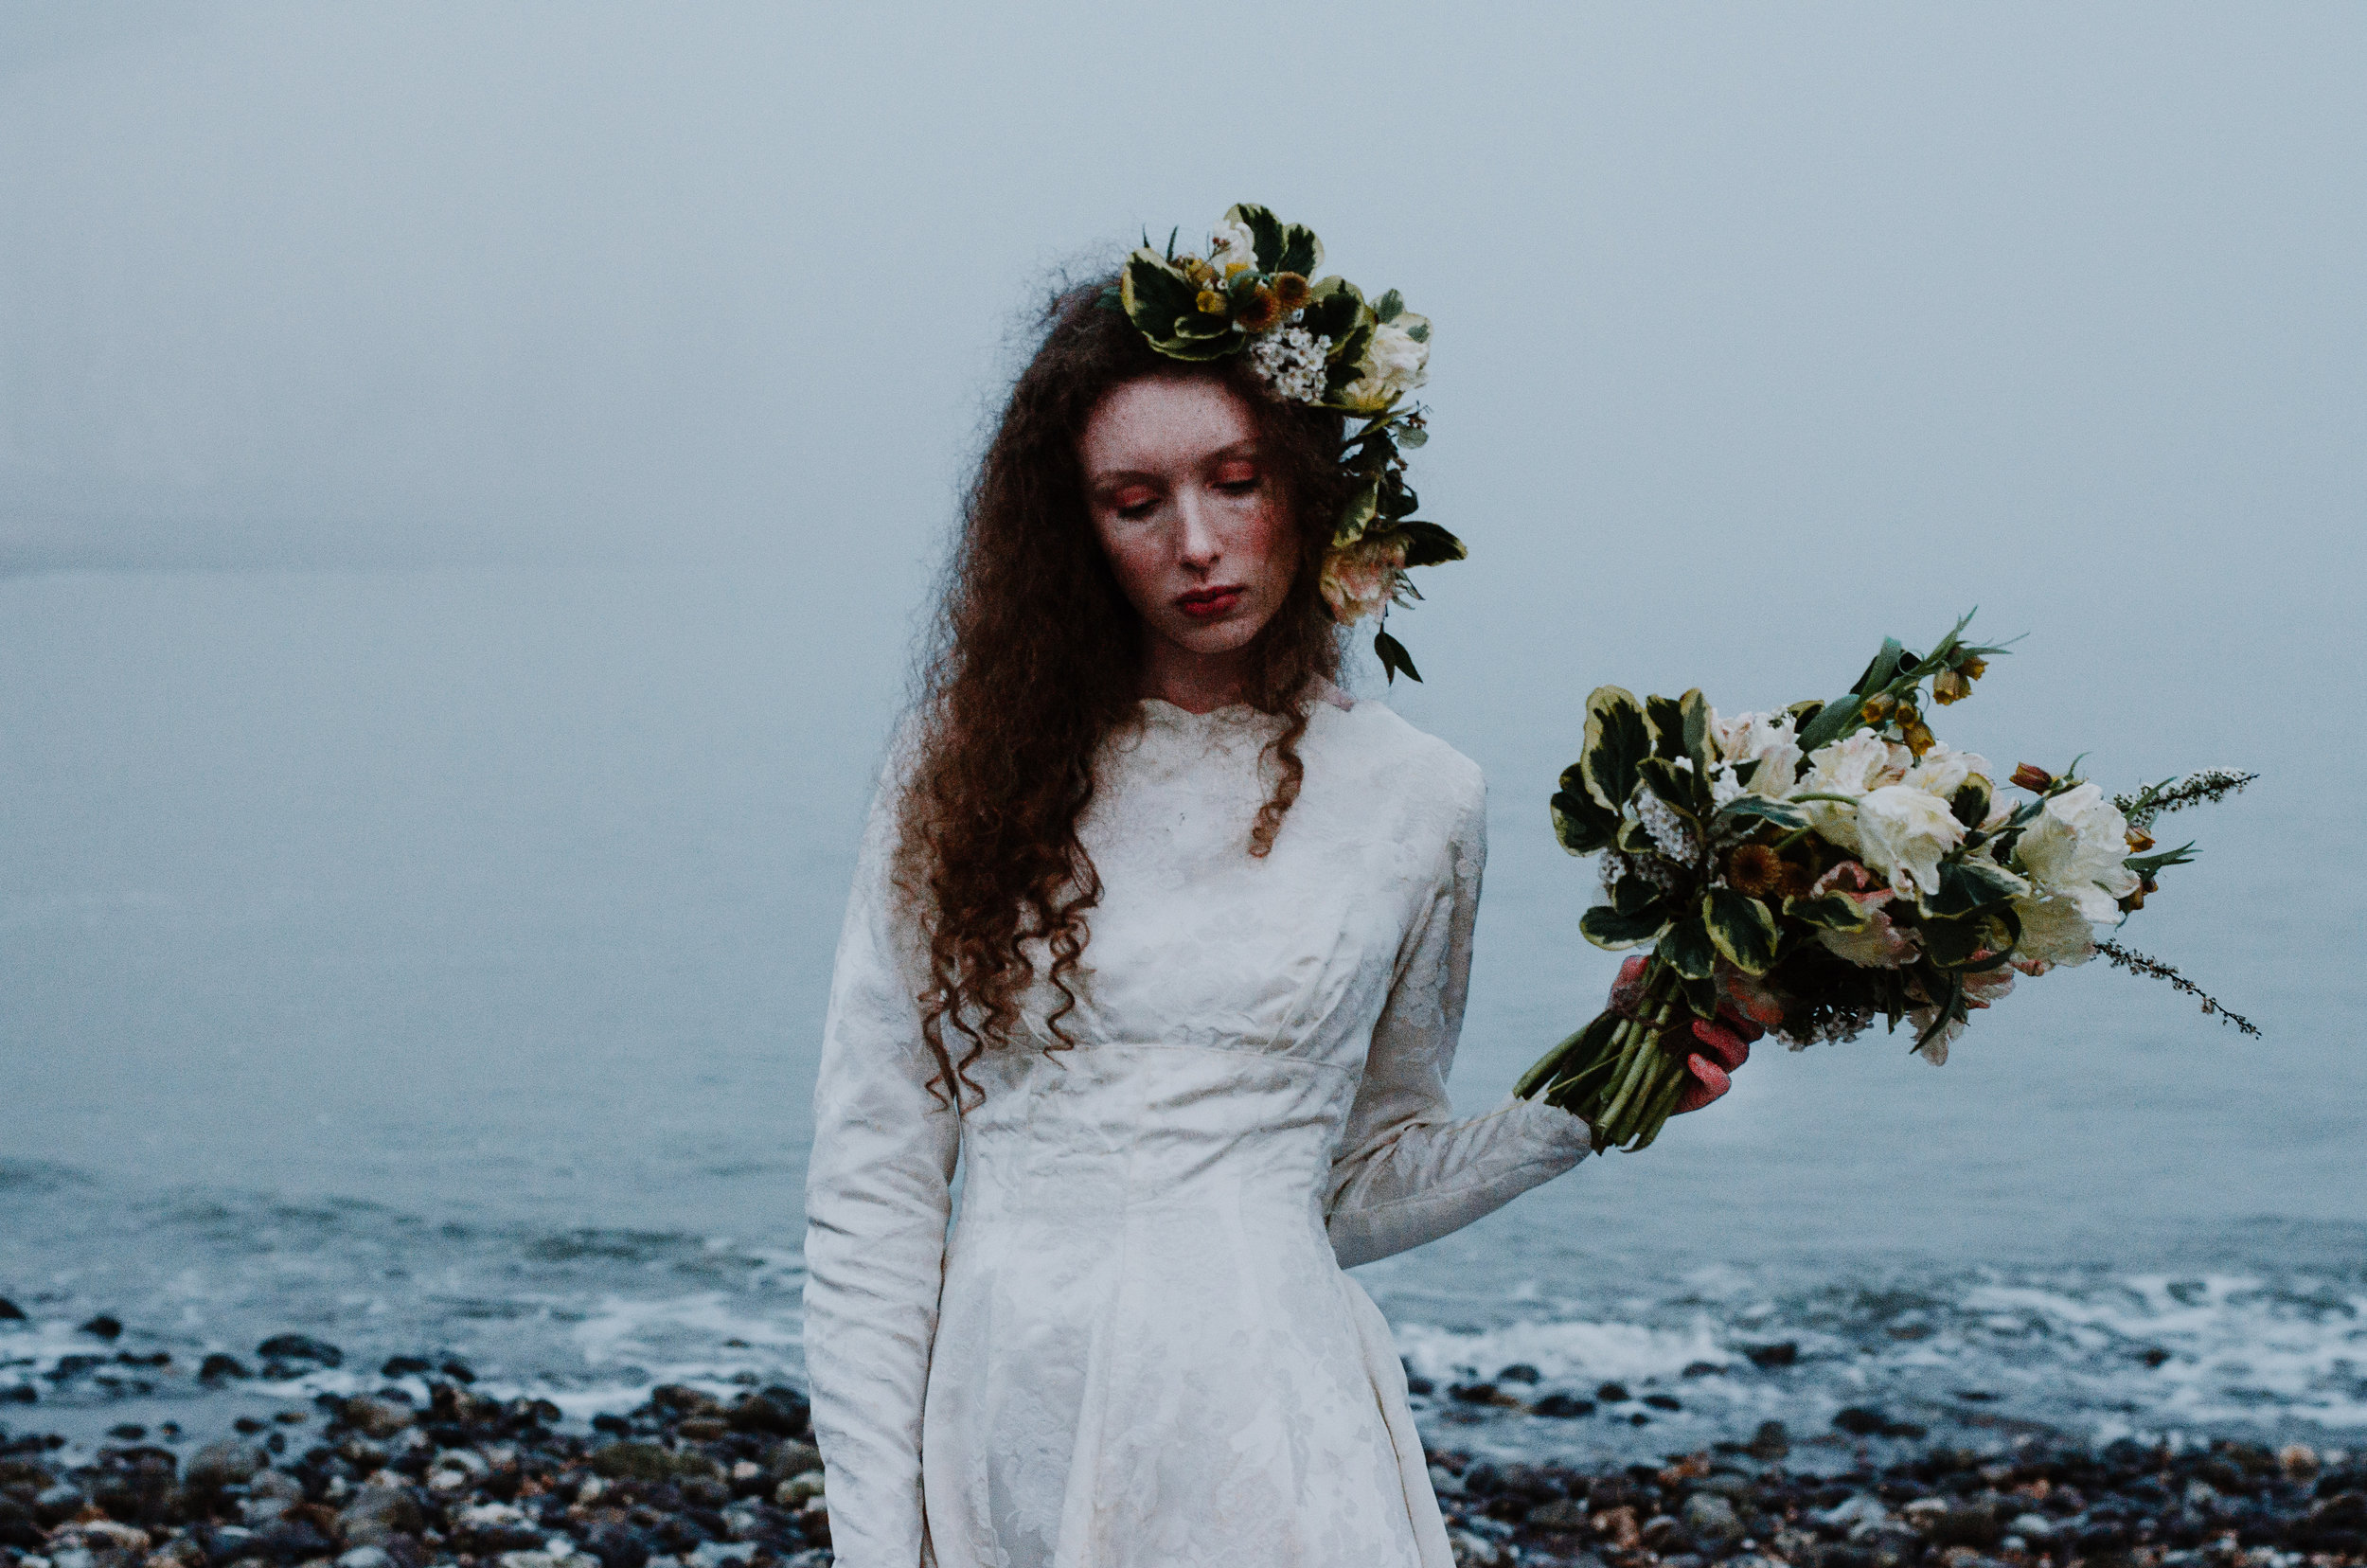 Bridal - Cuckmere Haven 2018 - Aiste Saulyte Photography-178.jpg